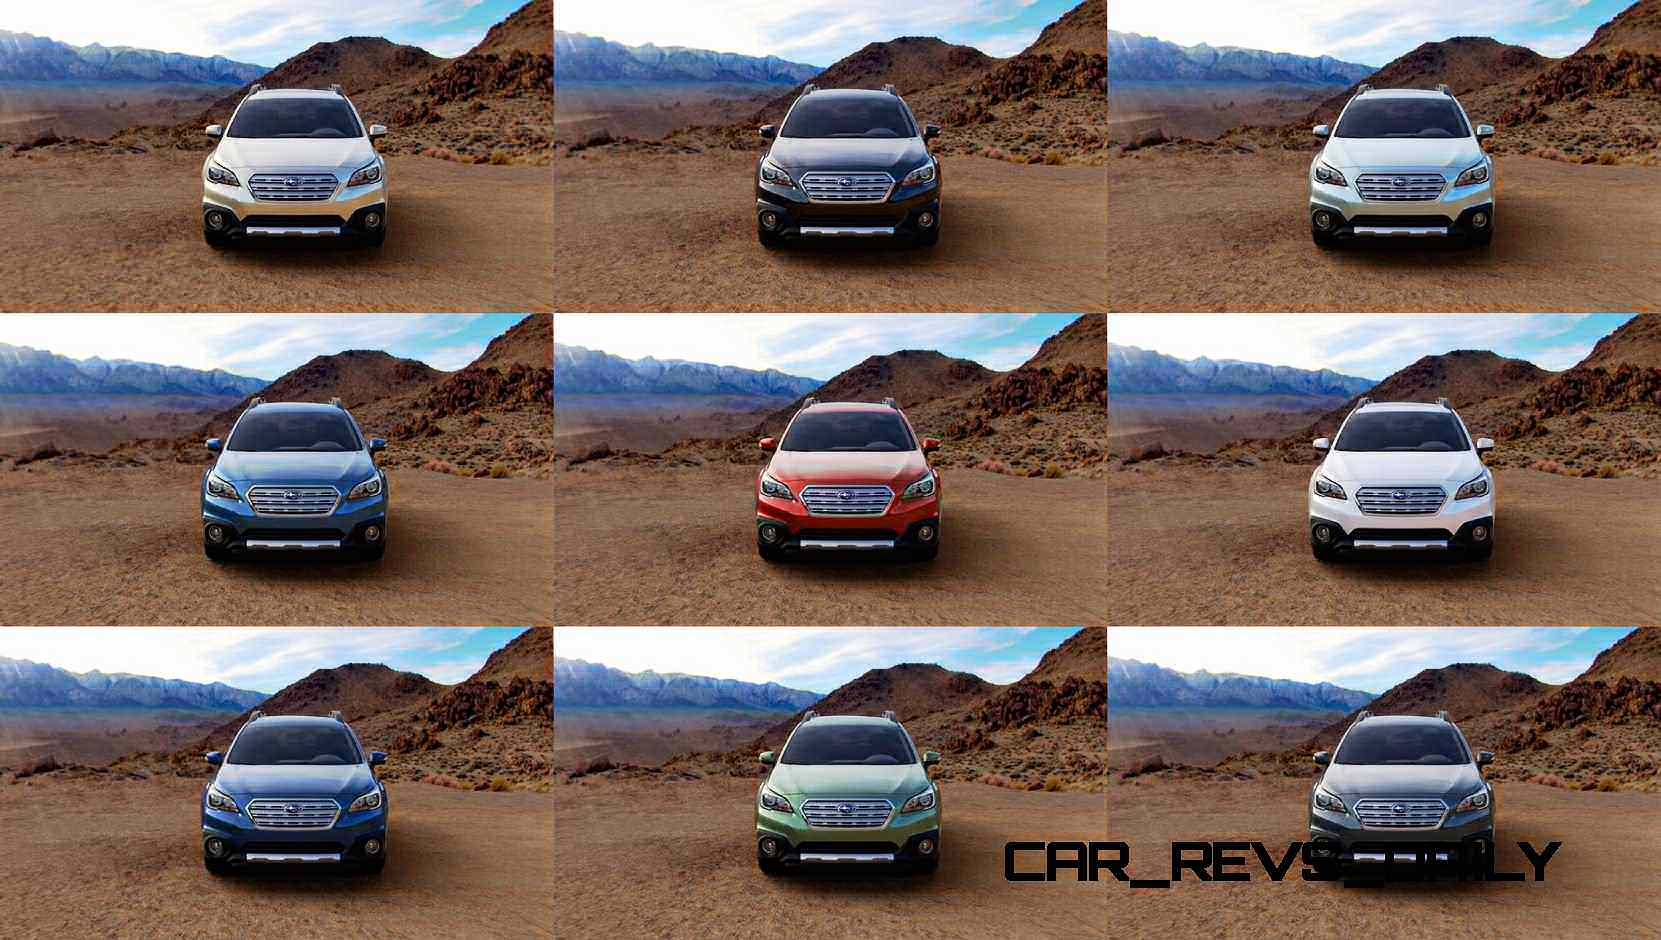 Colors of subaru outback